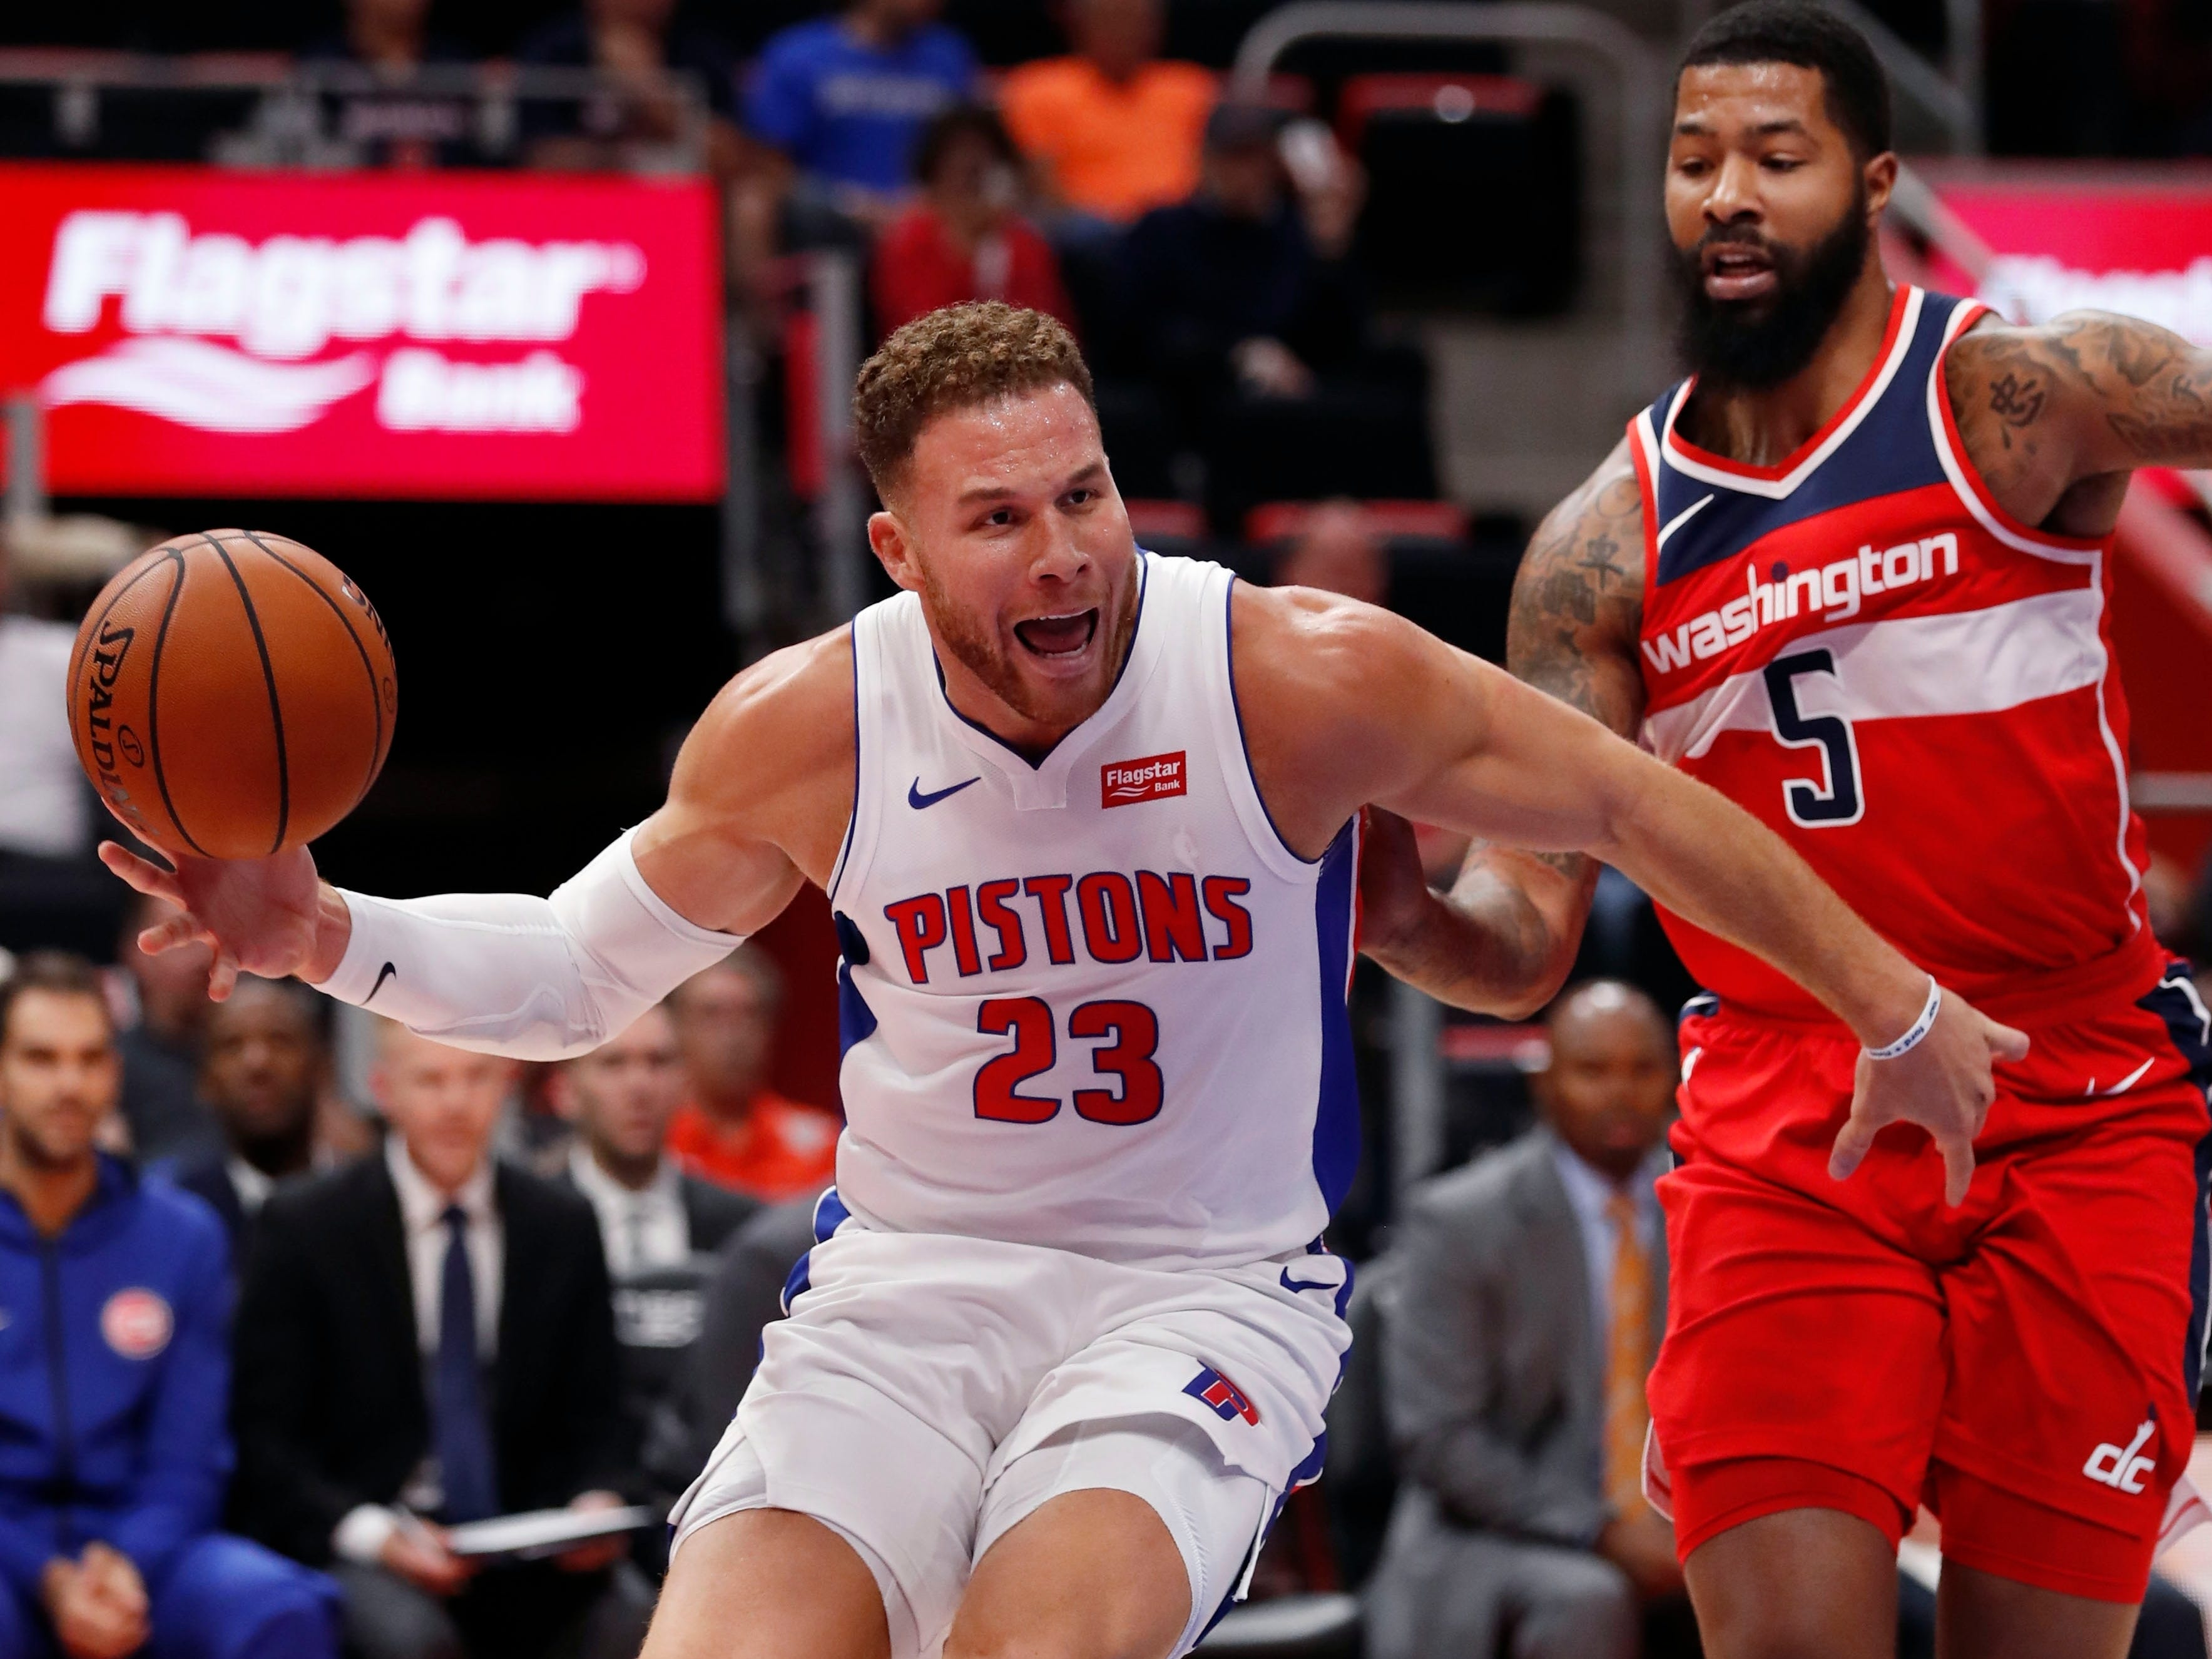 Detroit Pistons forward Blake Griffin (23), defended by Washington Wizards forward Markieff Morris (5), loses control of the ball during the first half.